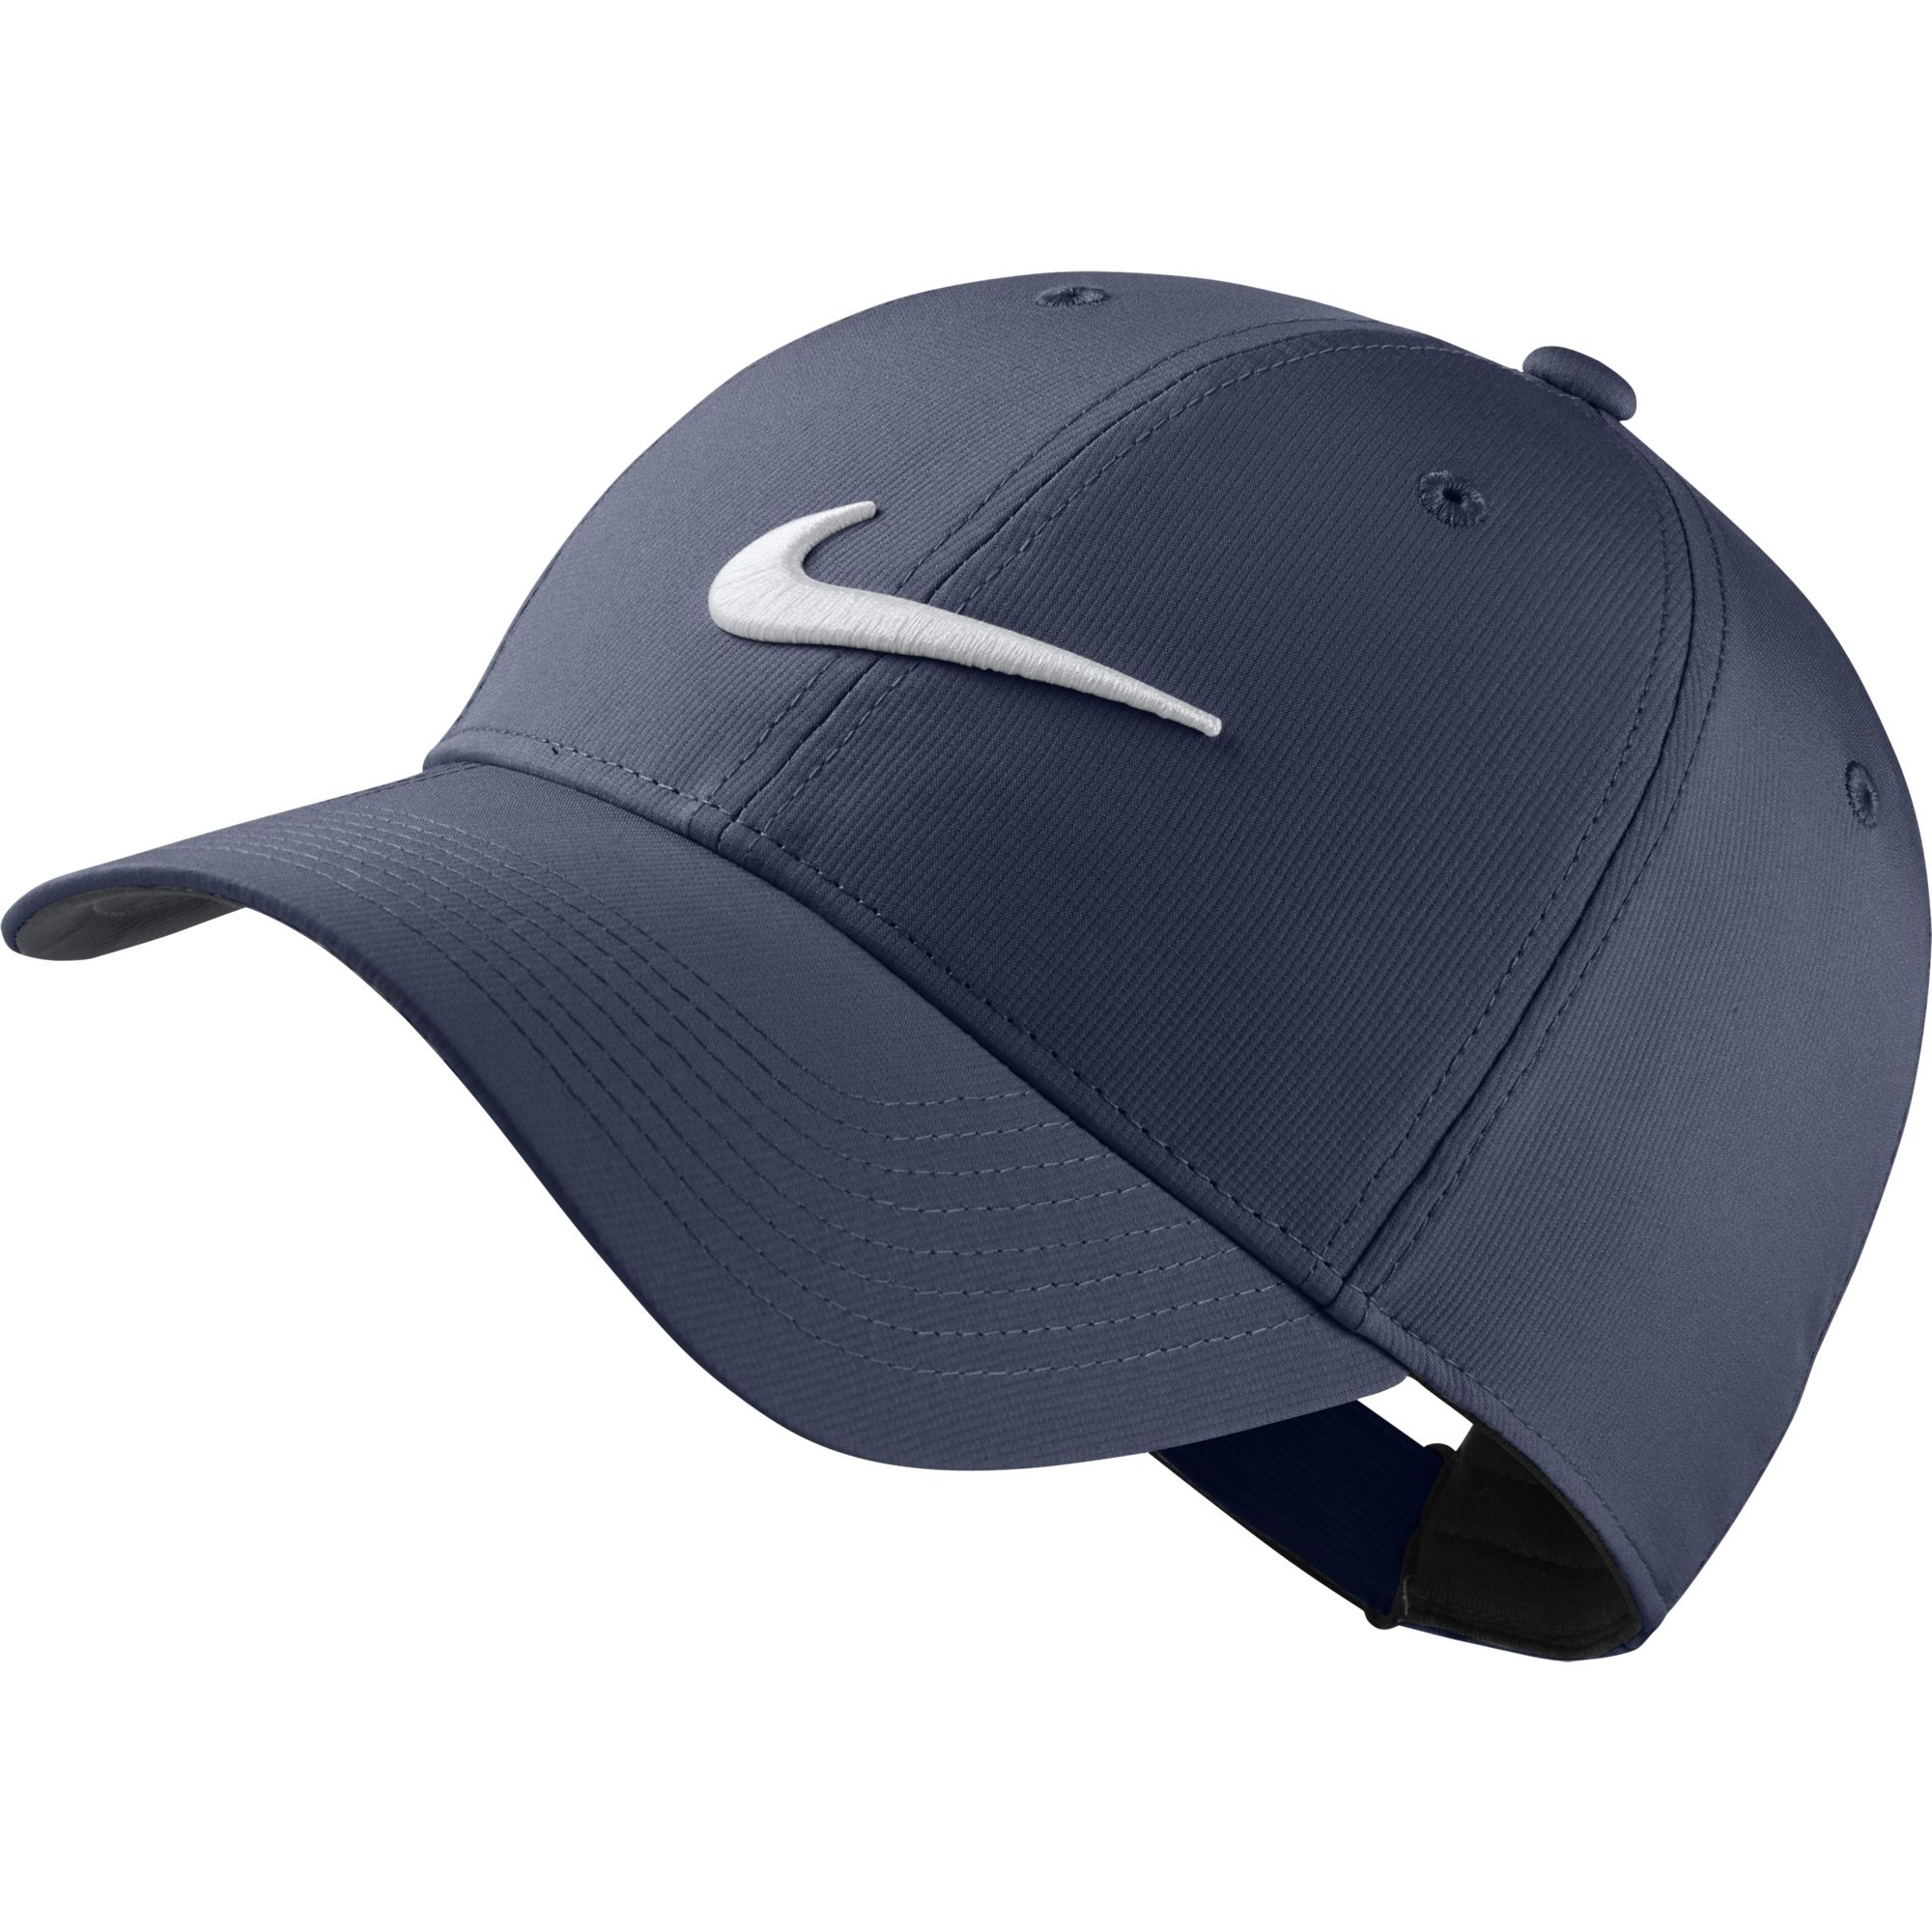 Legacy 91 Golf Hat, Navy, swatch